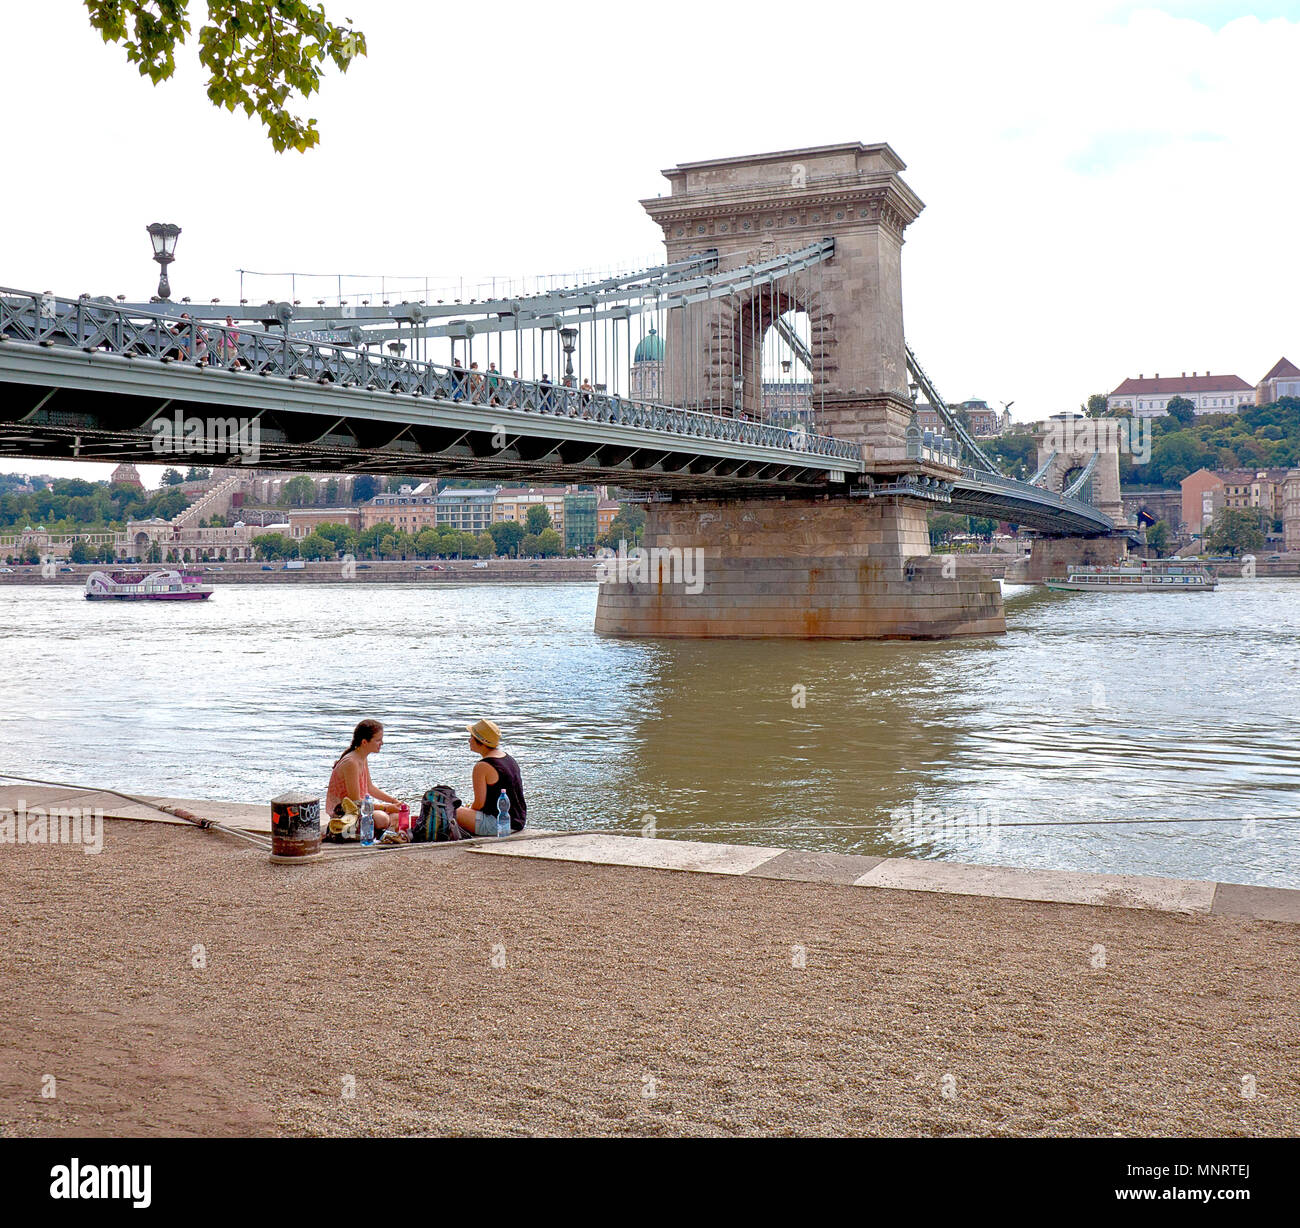 Two young girls picnic beside the Danube River near Dock 11 on the Pest side of the Elizabeth Bridge, Budapest, Hungary. - Stock Image